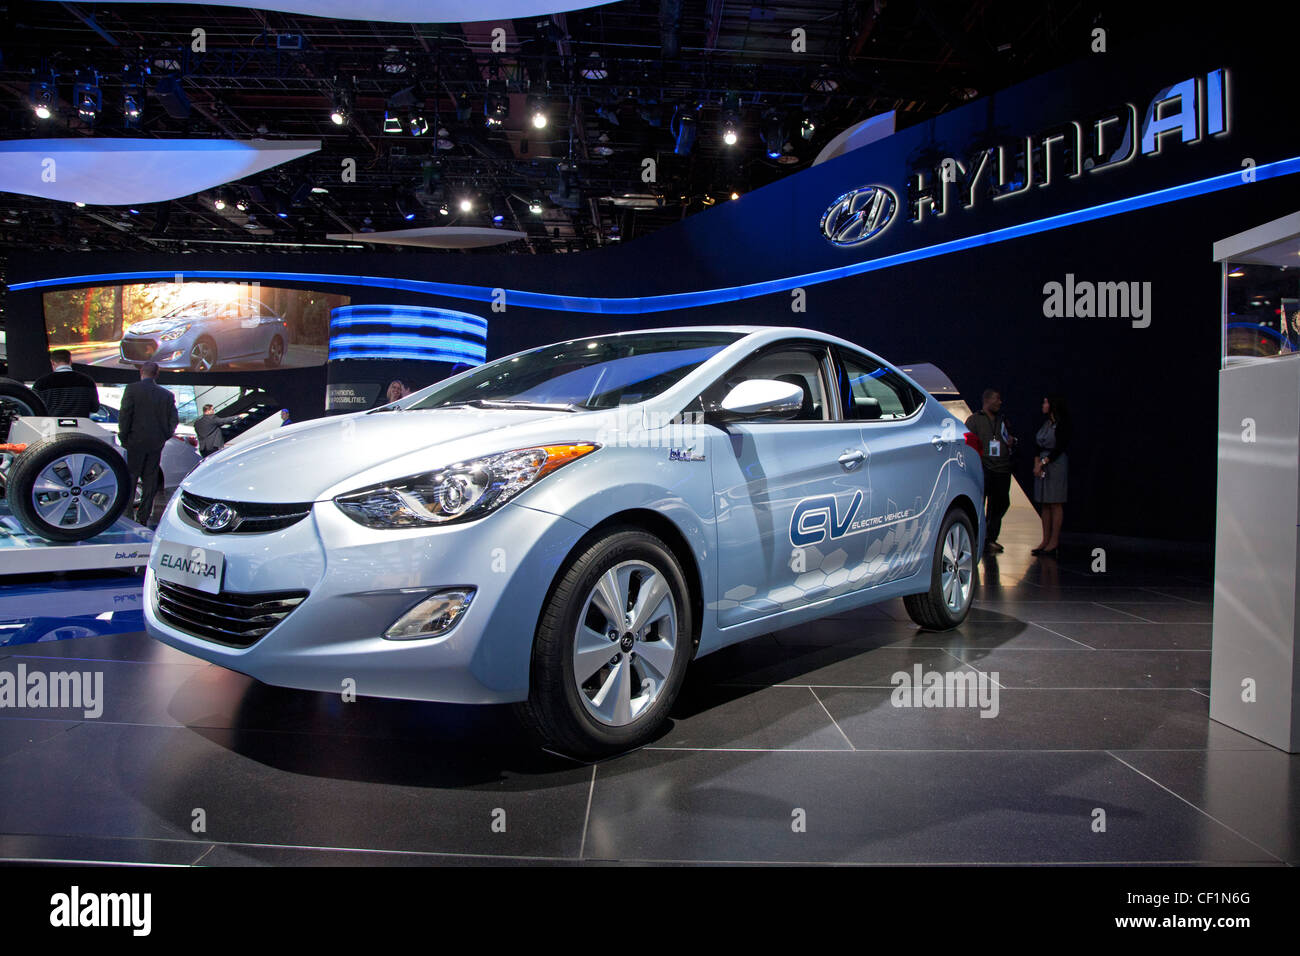 Hyundai Elantra plug-in electric car - Stock Image